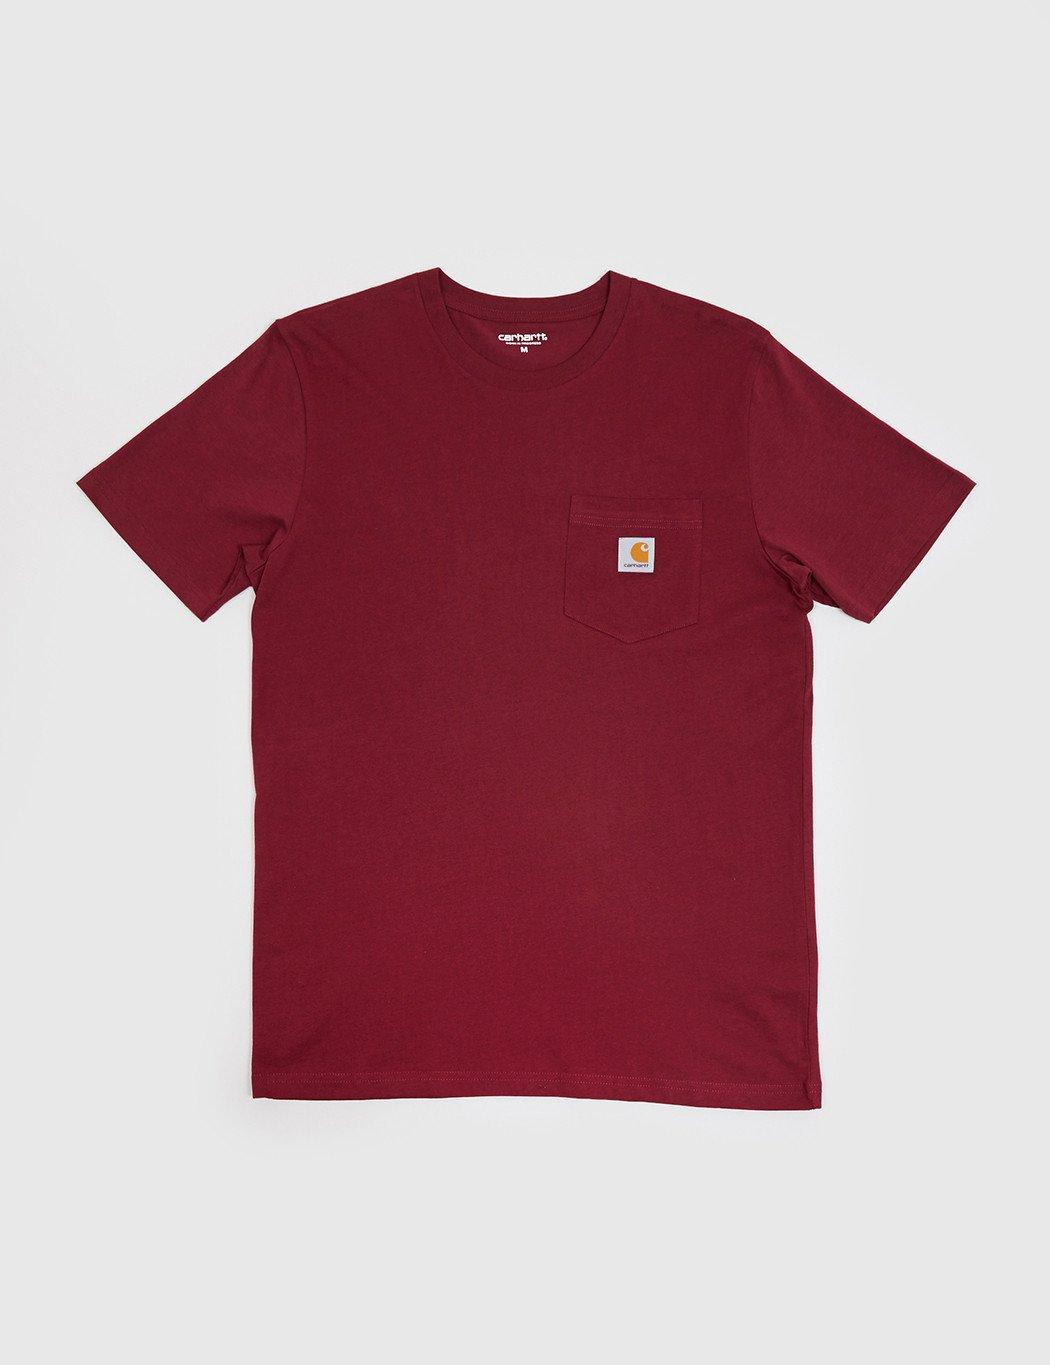 Lyst carhartt pocket t shirt in red for men for Carhartt burgundy t shirt